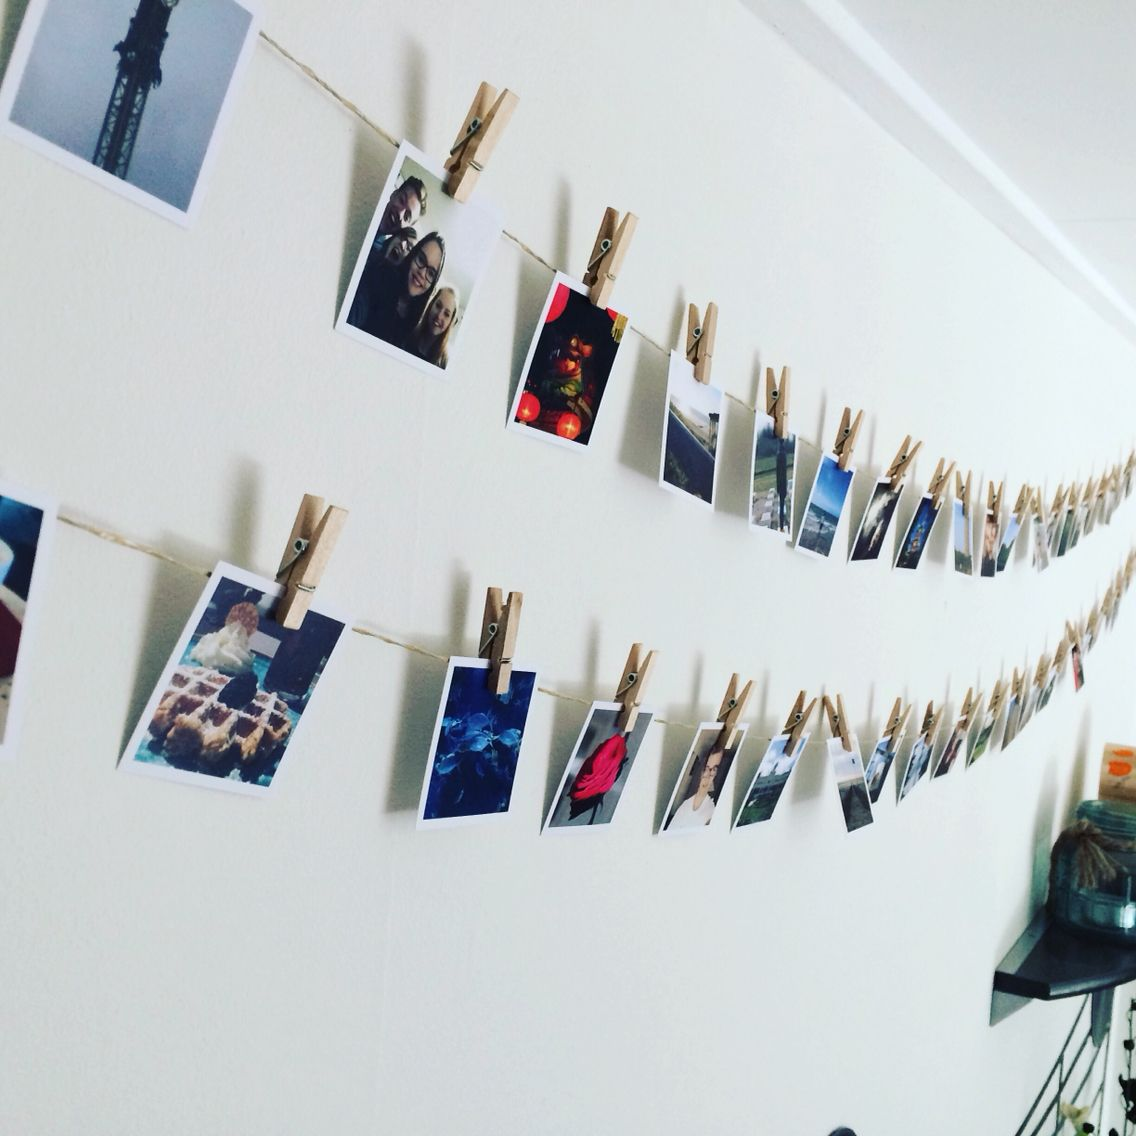 DIY pictures on a washing line with small washing pins.